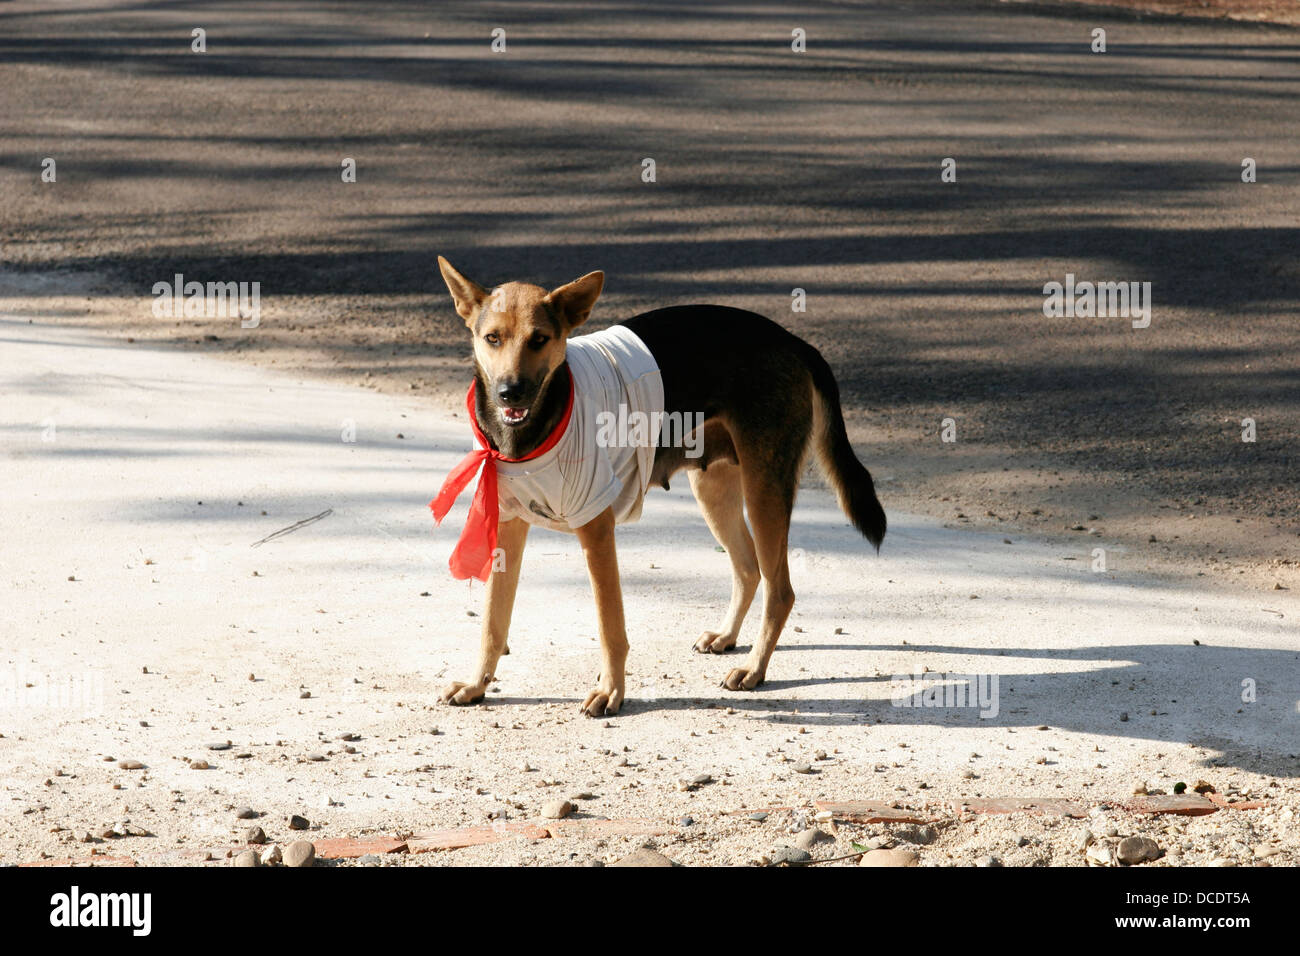 A dog wearing red tie, Laos - Stock Image